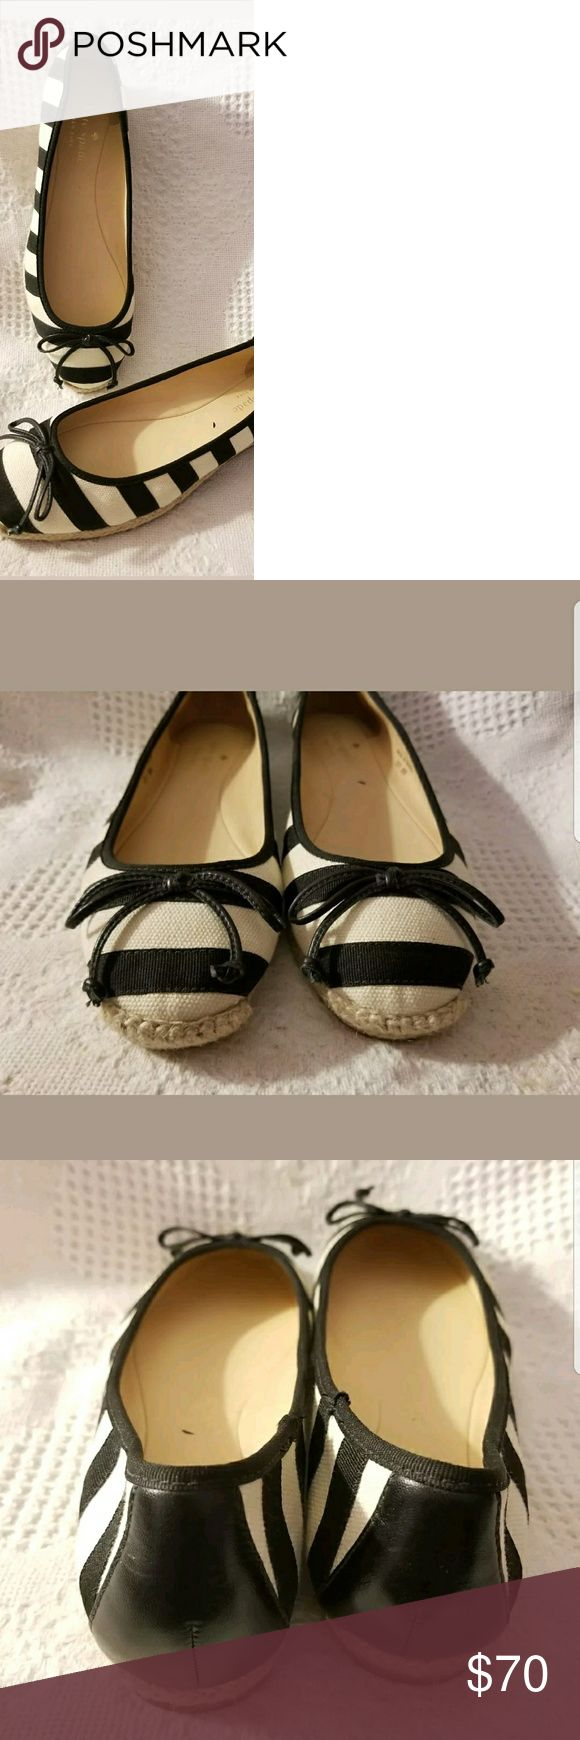 Kate Spade ballet flats 8 M Valley black ivory Kate Spade New York women's ballet flats size 8 M.  Valley canvas espadrille bow flat leather lining and footbed made in Brazil.  Fabulous quality and excellent condition, ready for Spring and Summer outfits! kate spade Shoes Espadrilles